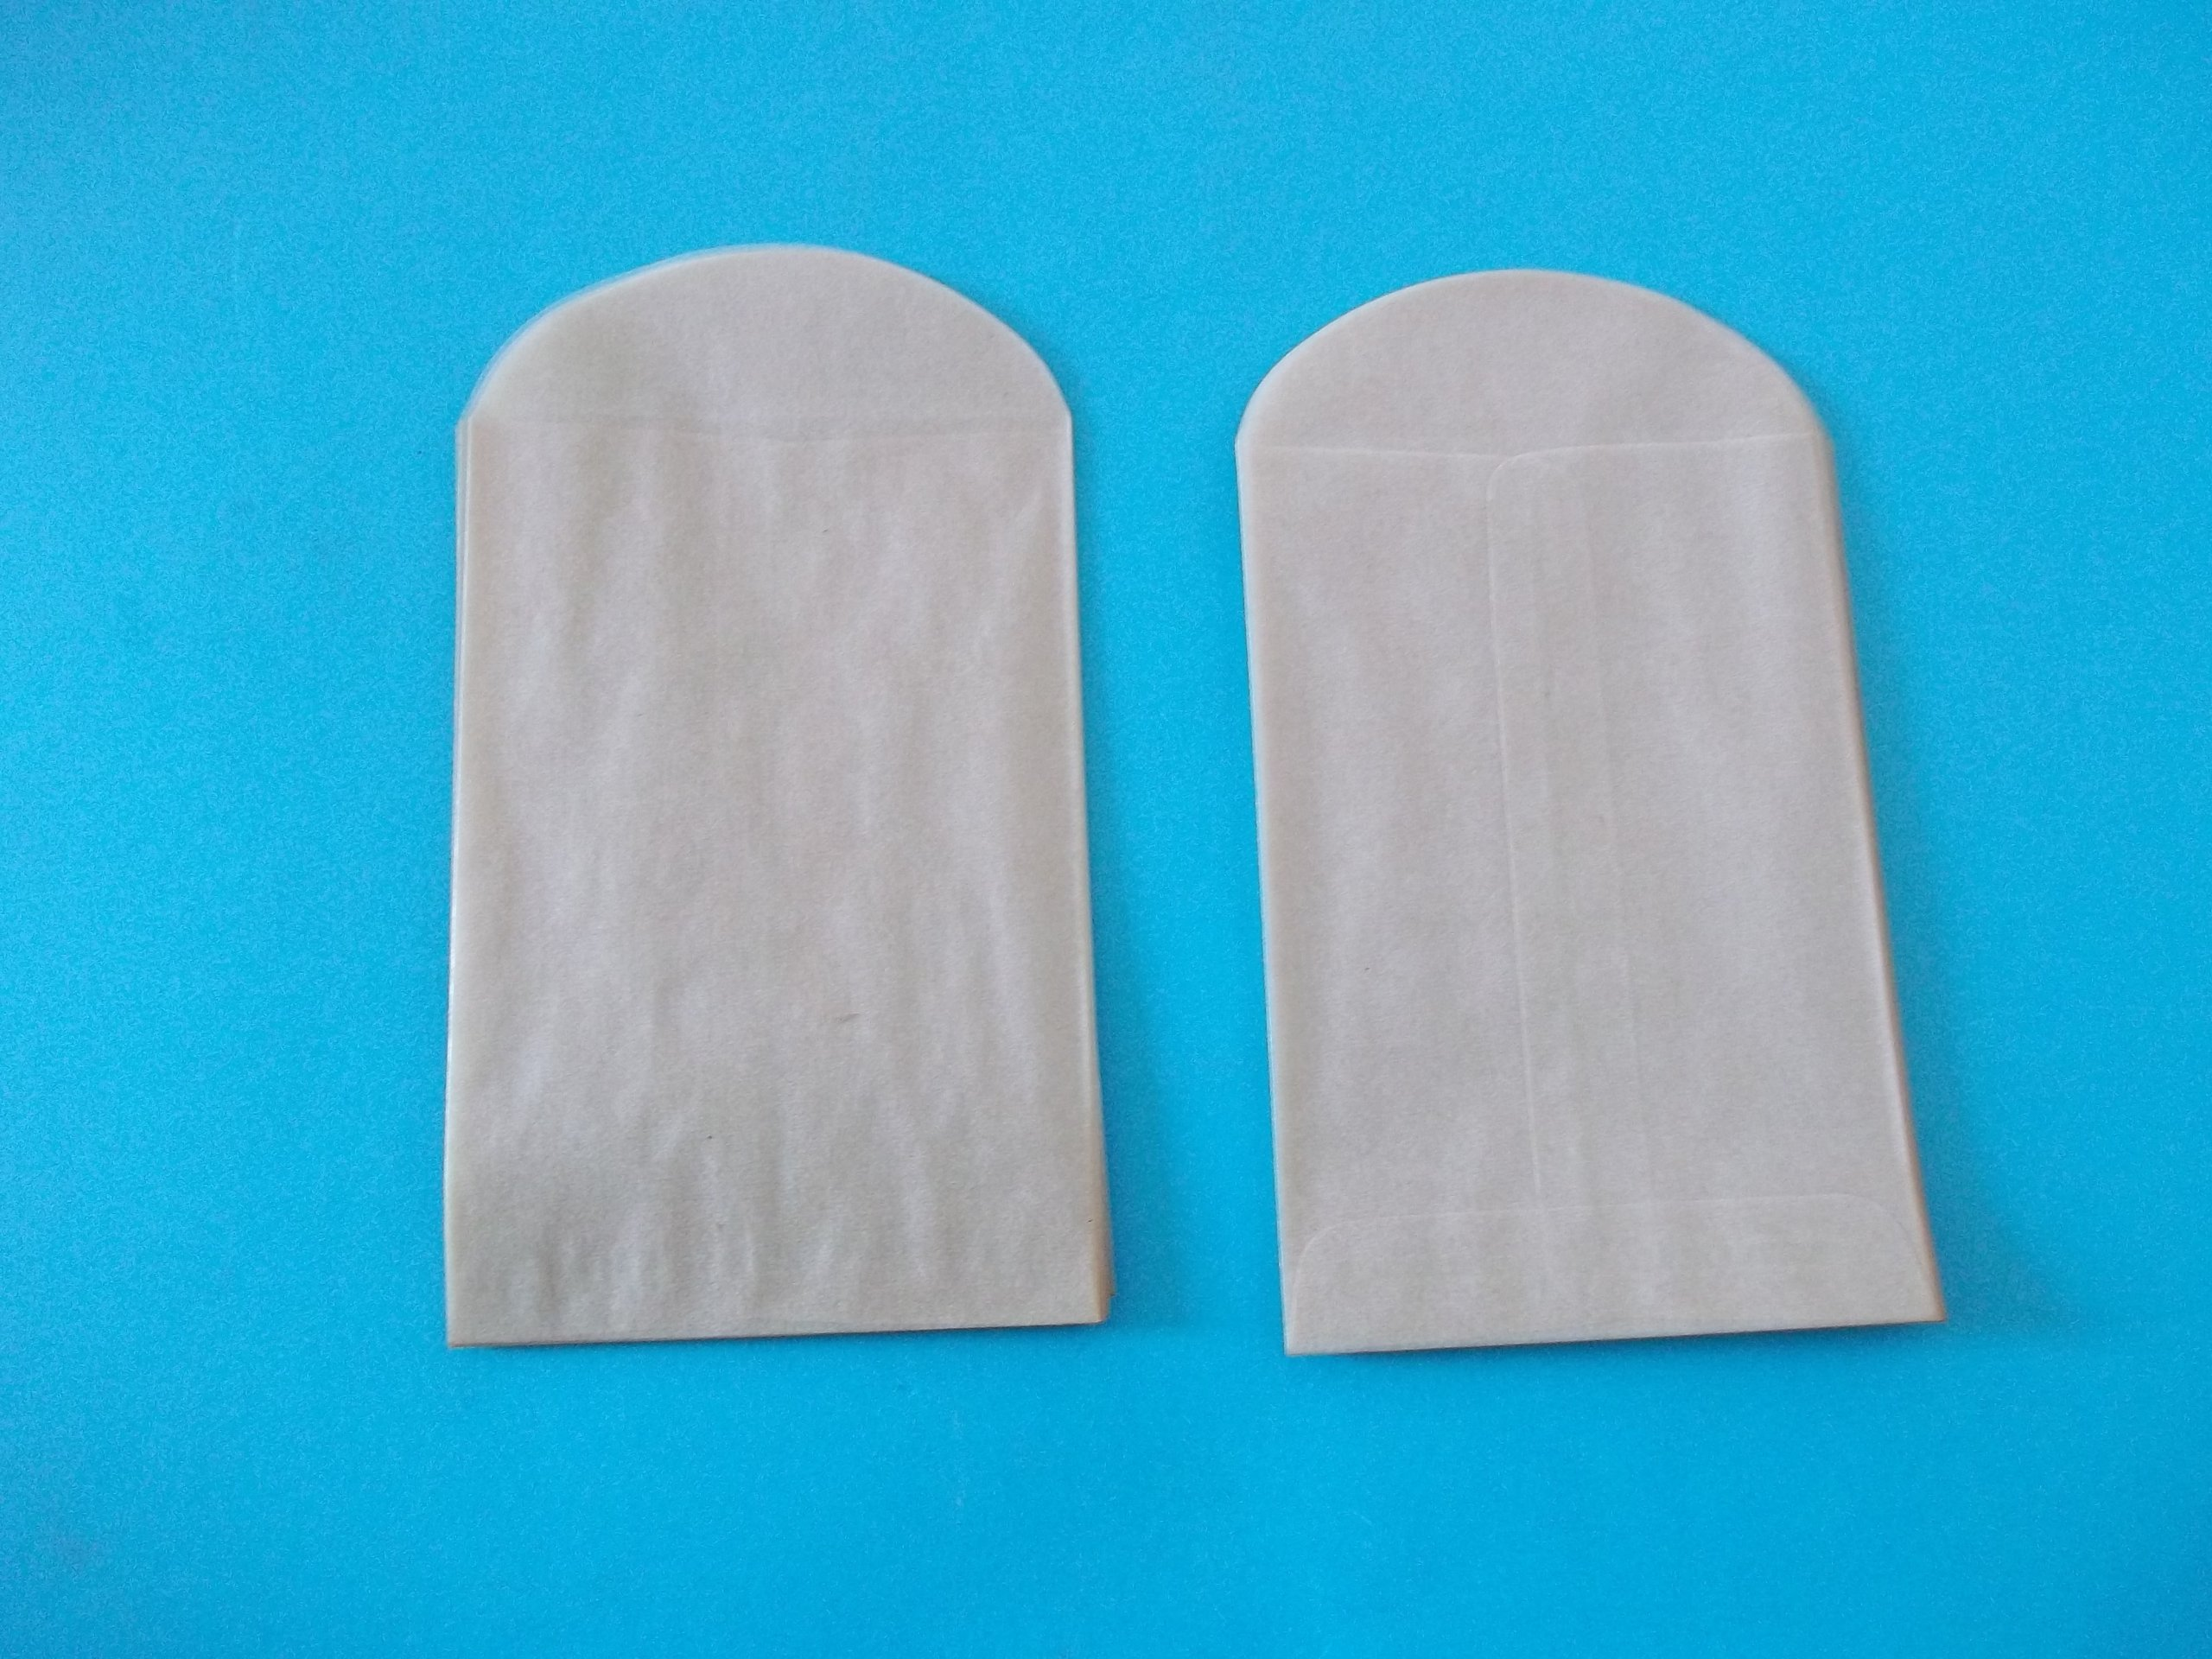 Emco, Glassine Envelopes, 3'' (W) x 4 1/2'' (H), Sold in Packages of 100 Envelopes off white not pure white from storage